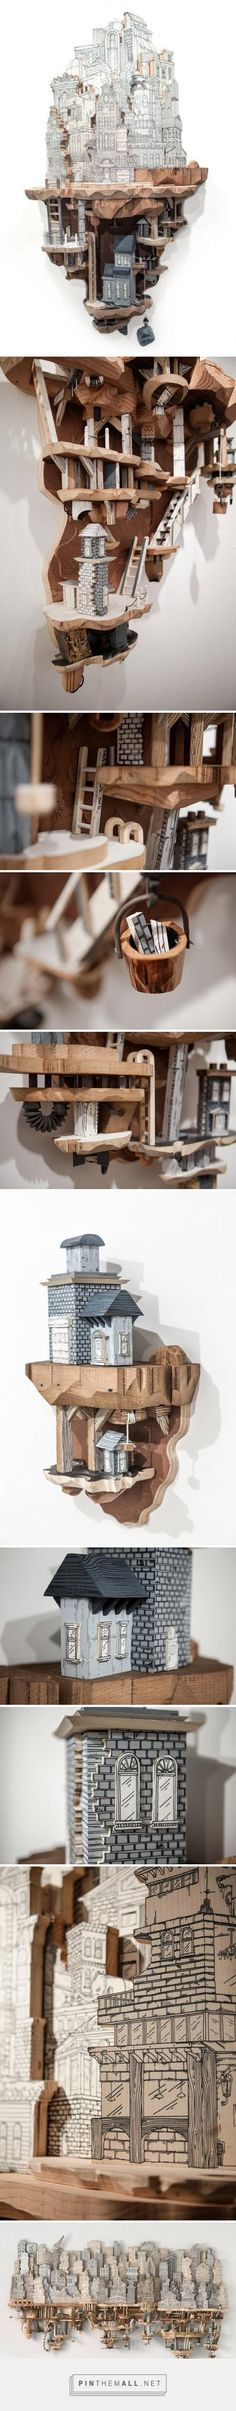 Philadelphia-based artist Luke O'Sullivan manufactures models of urban architecture from wood carvings and printed illustrations. The 32 year old American creates eccentric sculptures of miniature cities inspired by a whimsical science fiction theme - which seem to have taken his topsy-turvy houses out of a steampunk fantasy novel.